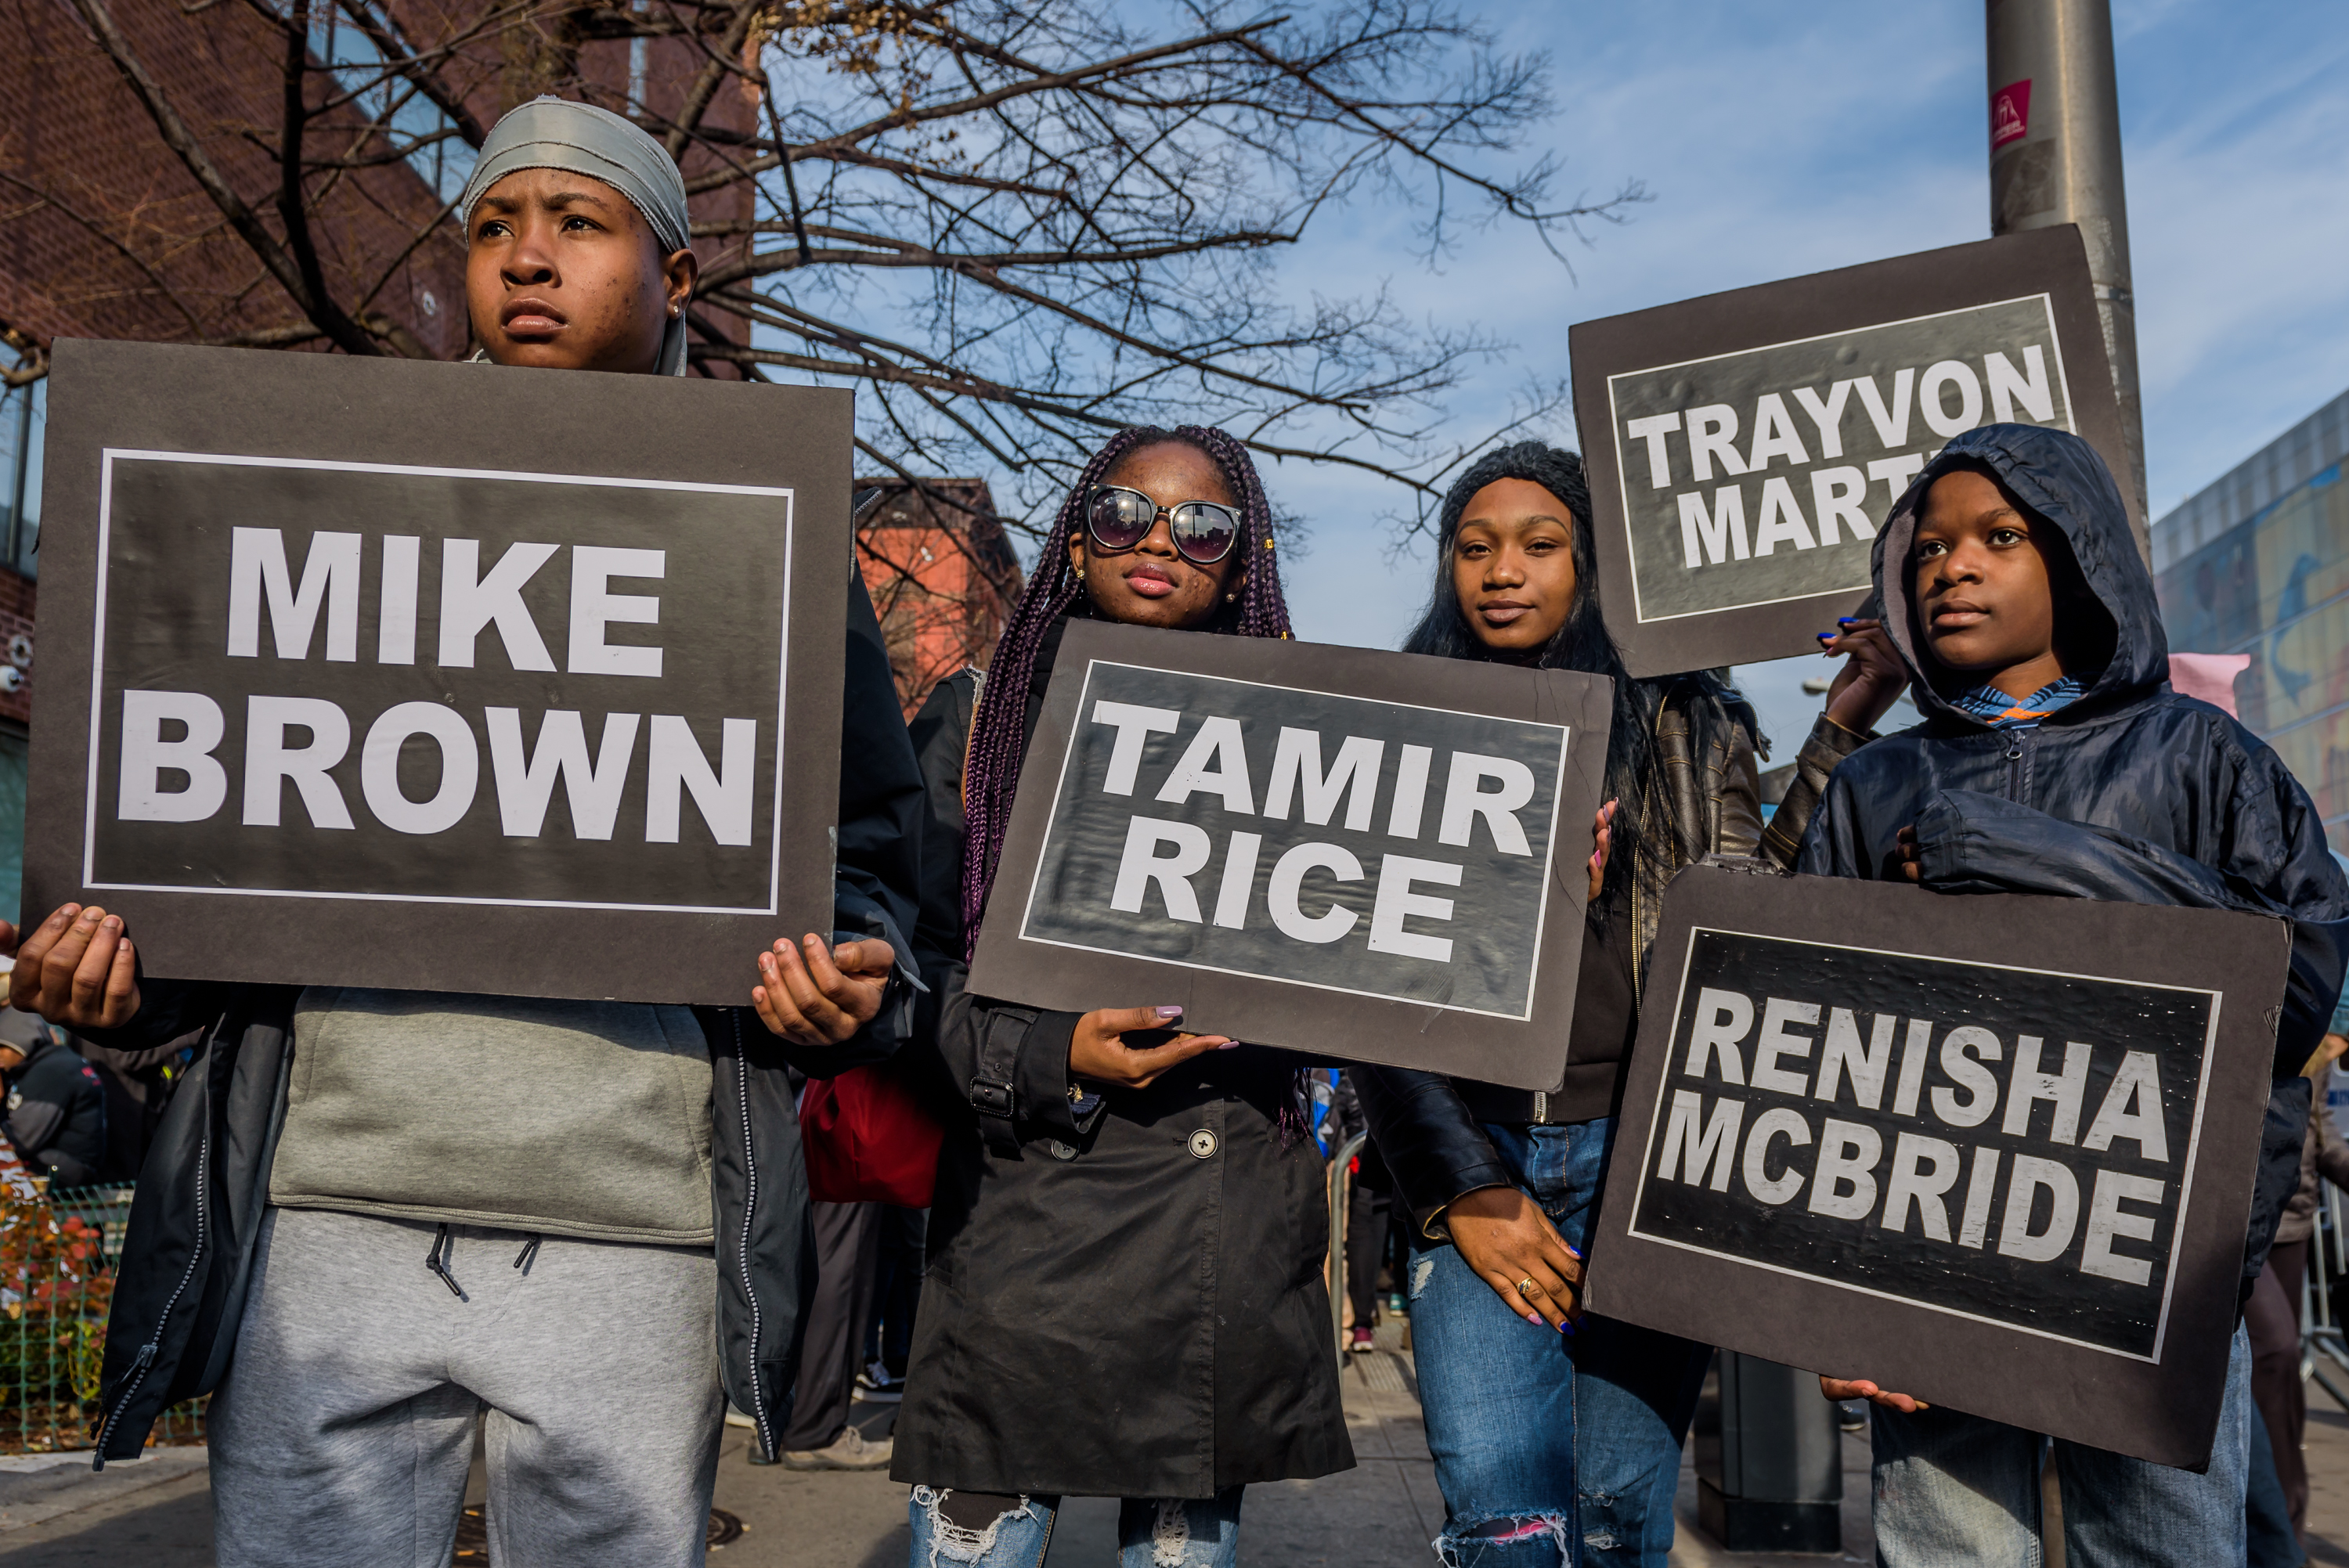 Students from South Bronx Community Charter High School with help from community leaders gathered at the Schomburg Center for Research in Black Culture in Harlem and led the second annual Future of the City March against police brutality on December 2, 2017; marching with students from other New York City schools against police brutality and the unjust treatment of people of color.